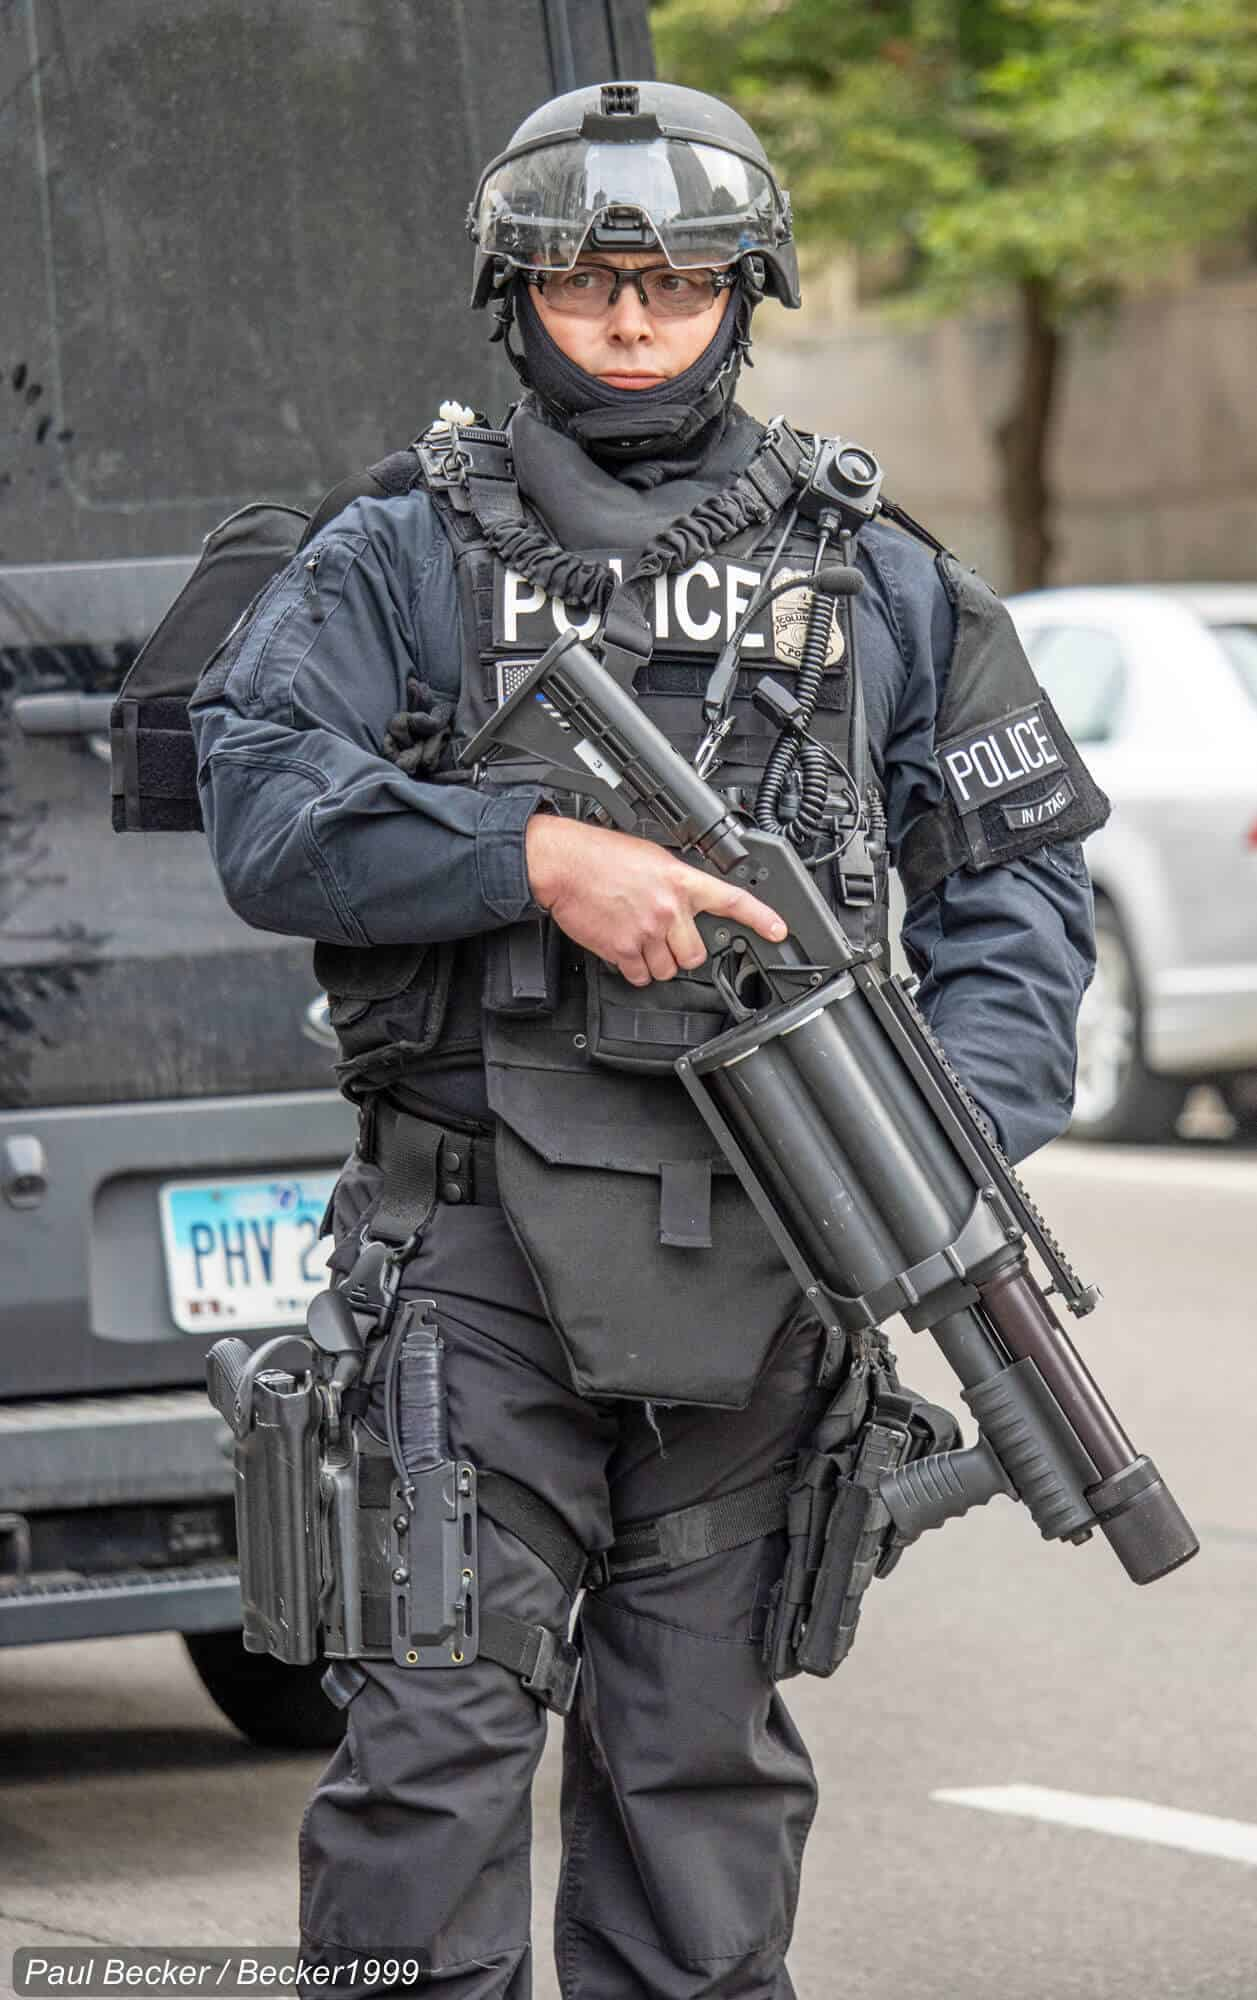 Heavily Armed Police Officer - Photo by Becker1999 Flickr